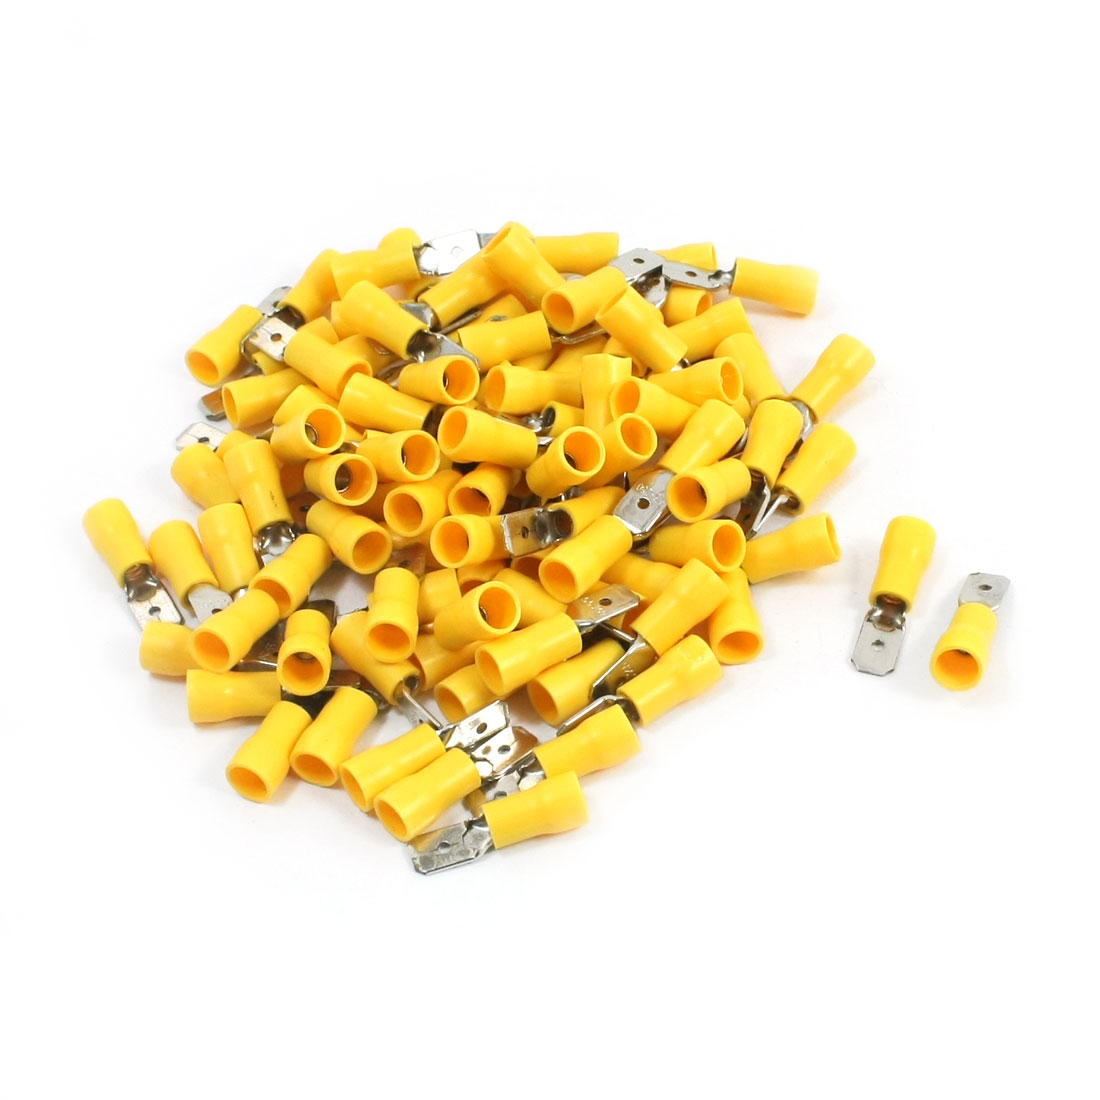 100Pcs 12-10 AWG MDD5-250 Yellow PVC Sleeve Insulated Cable Terminals Crimp